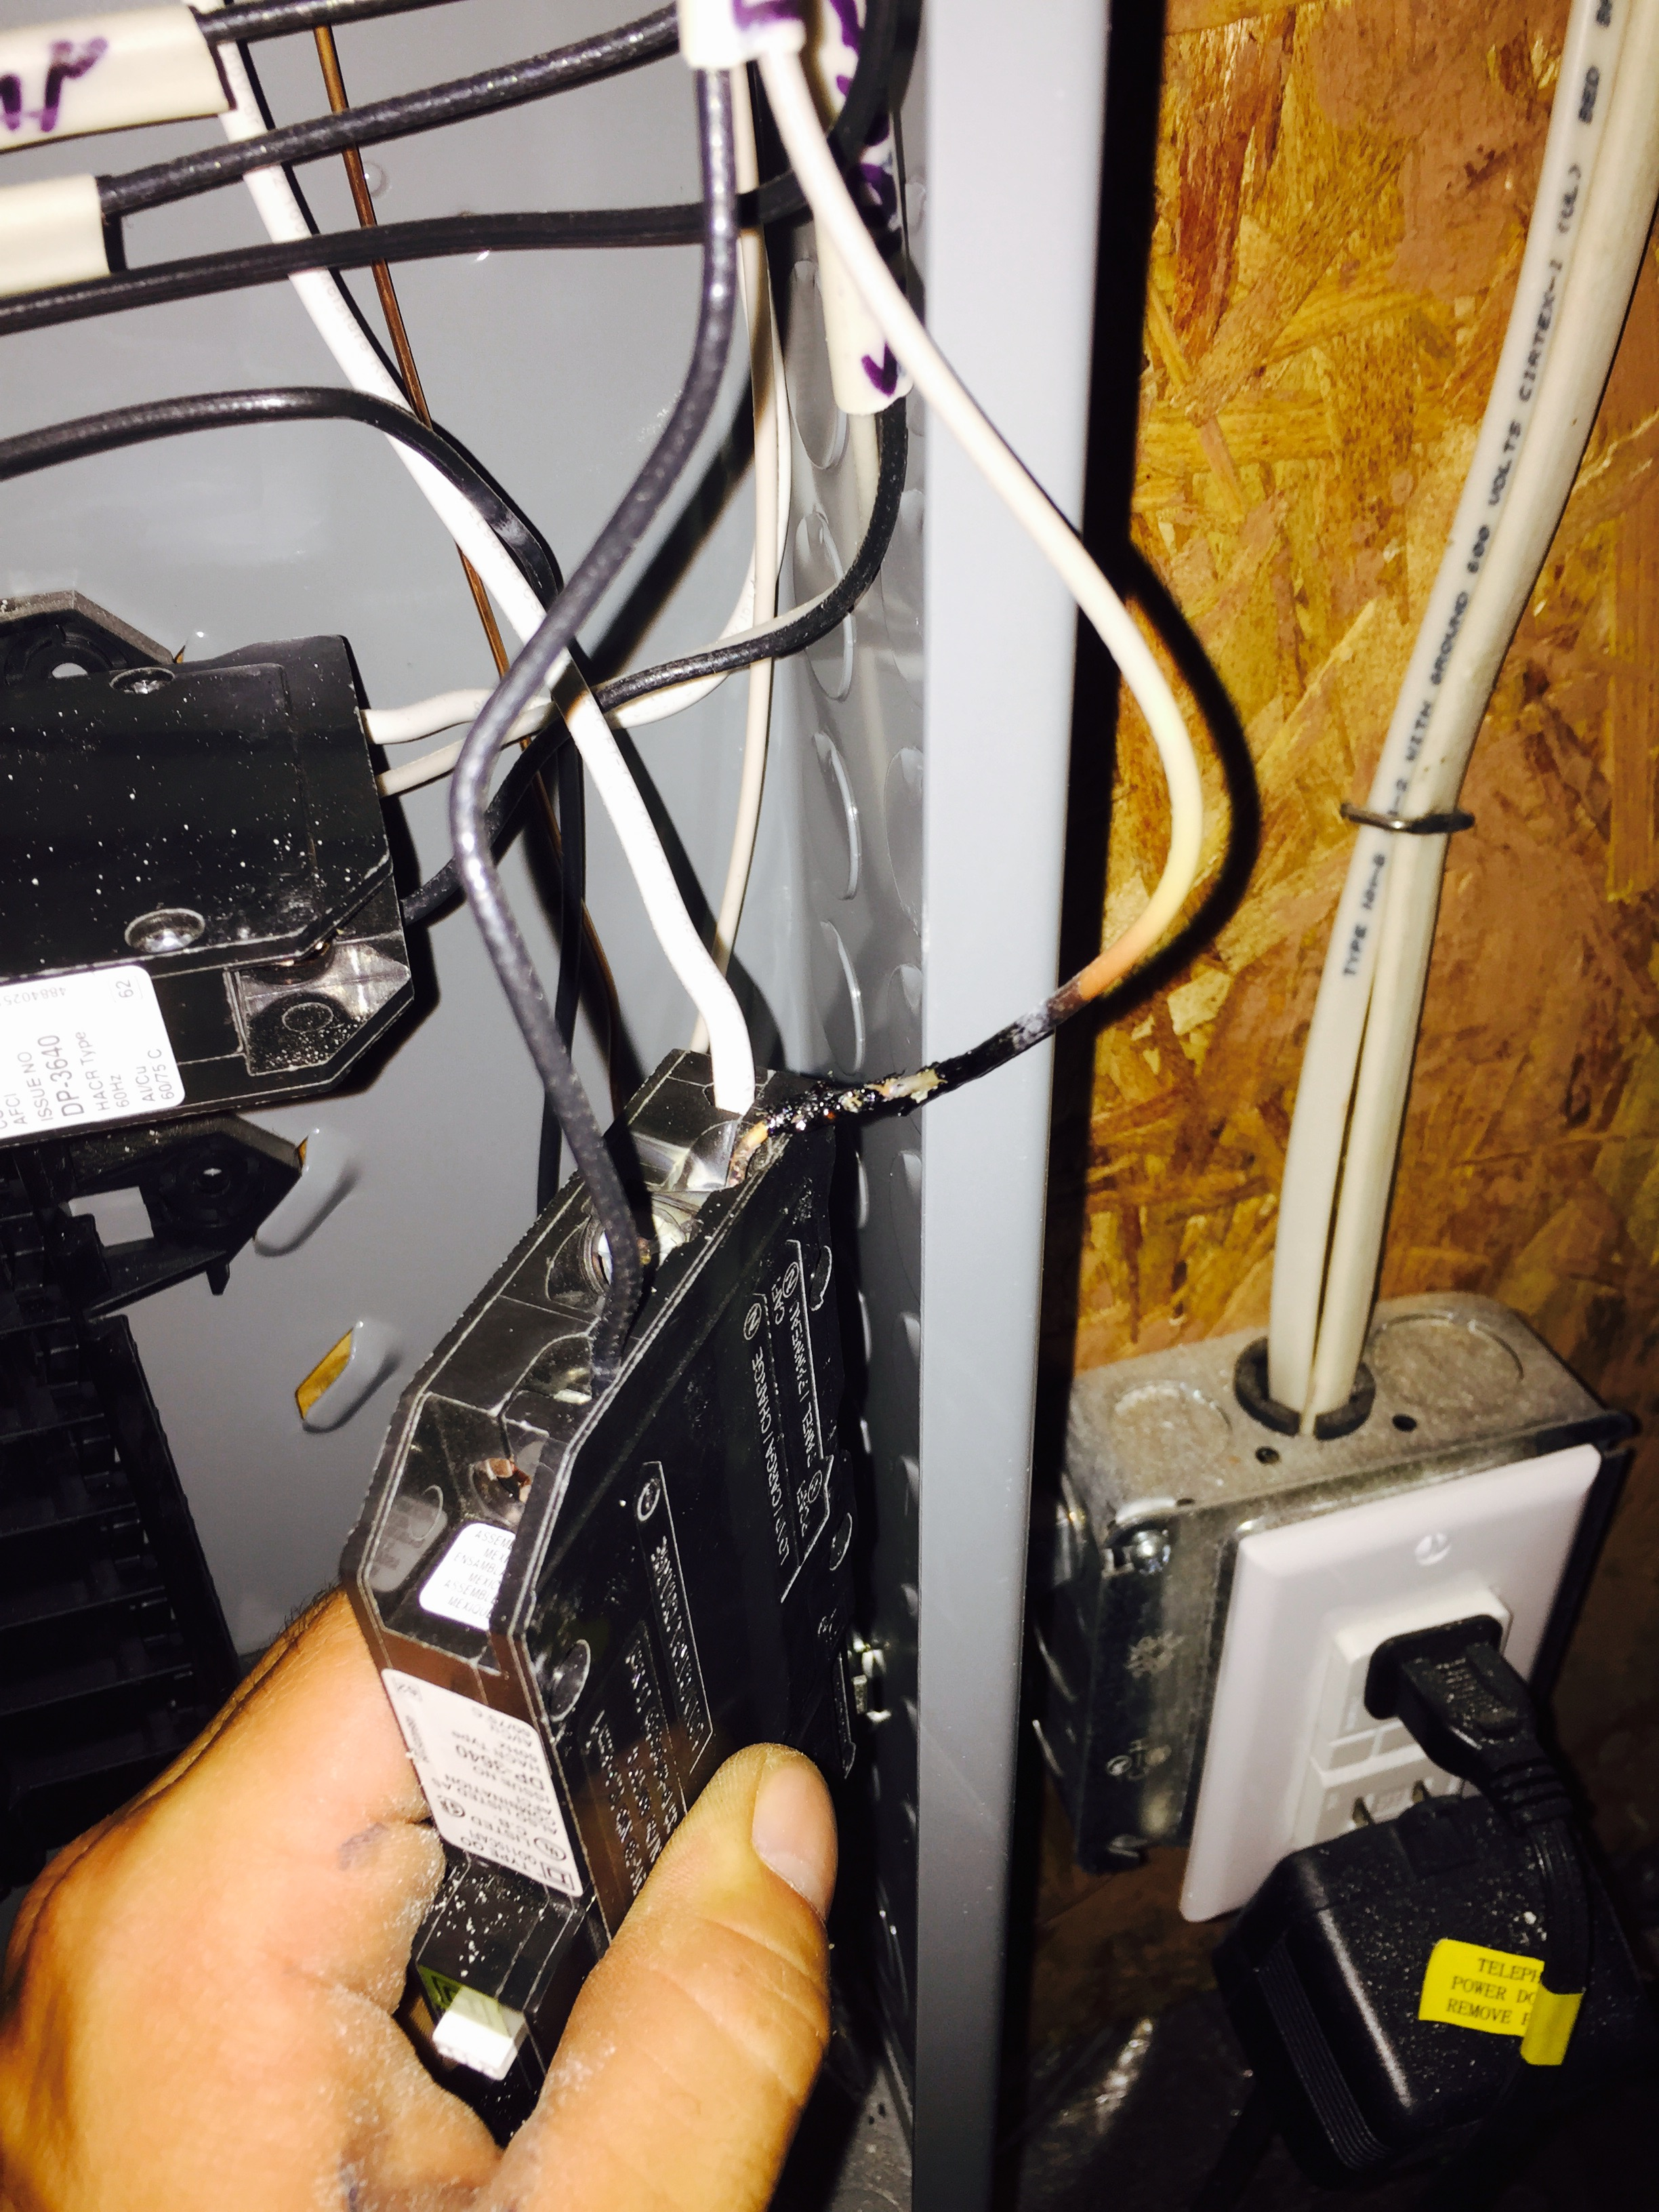 troubleshooting and repair - commercial electrical repair services